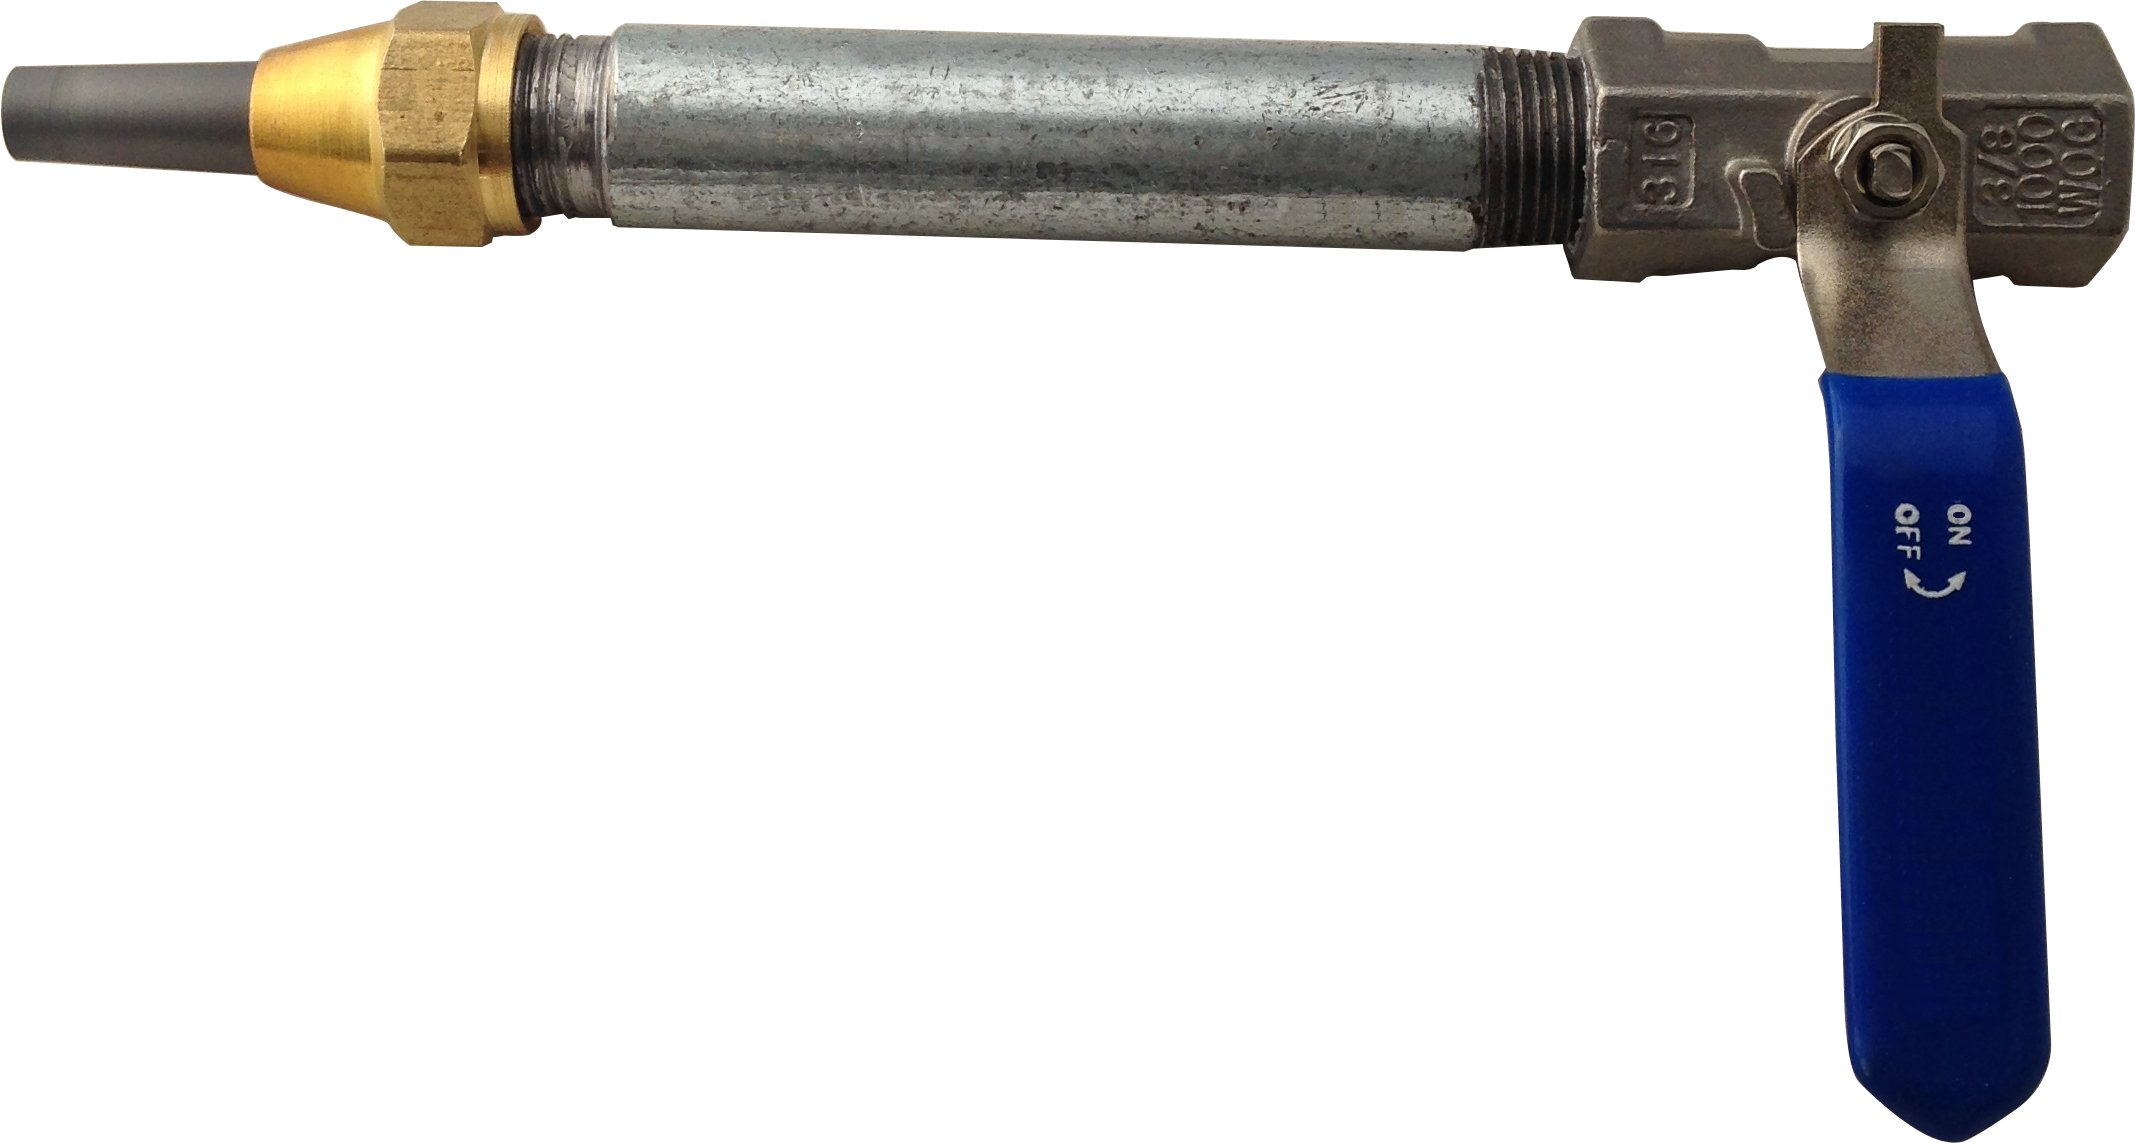 Sandblaster Nozzle Gun with Holder, Long-Lasting Steel Valve with 1/8'' ID Super Long-Lasting ROC TEC Composite Carbide Tip